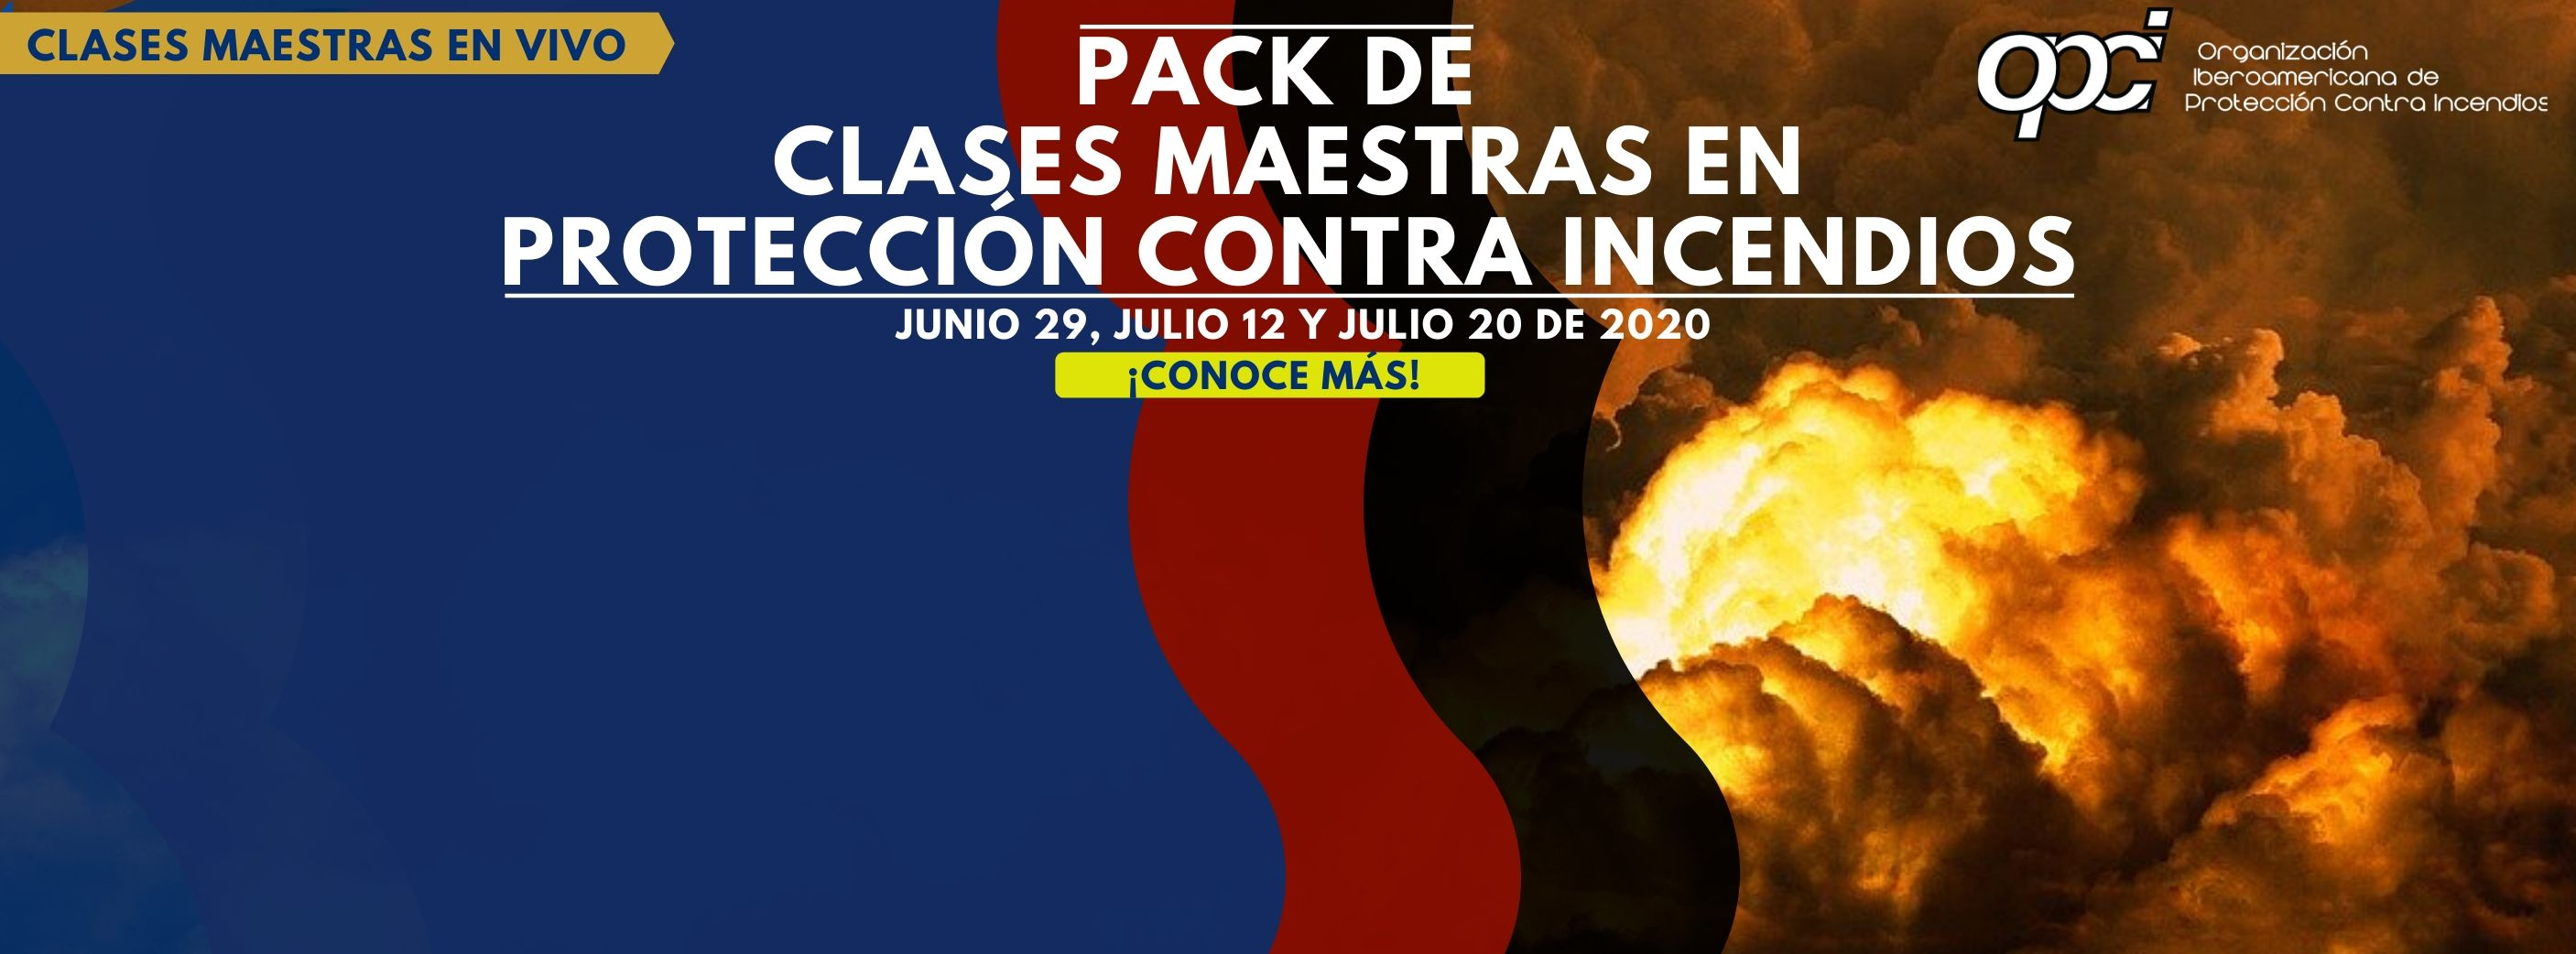 PACK-DE-CLASES-MAESTRAS